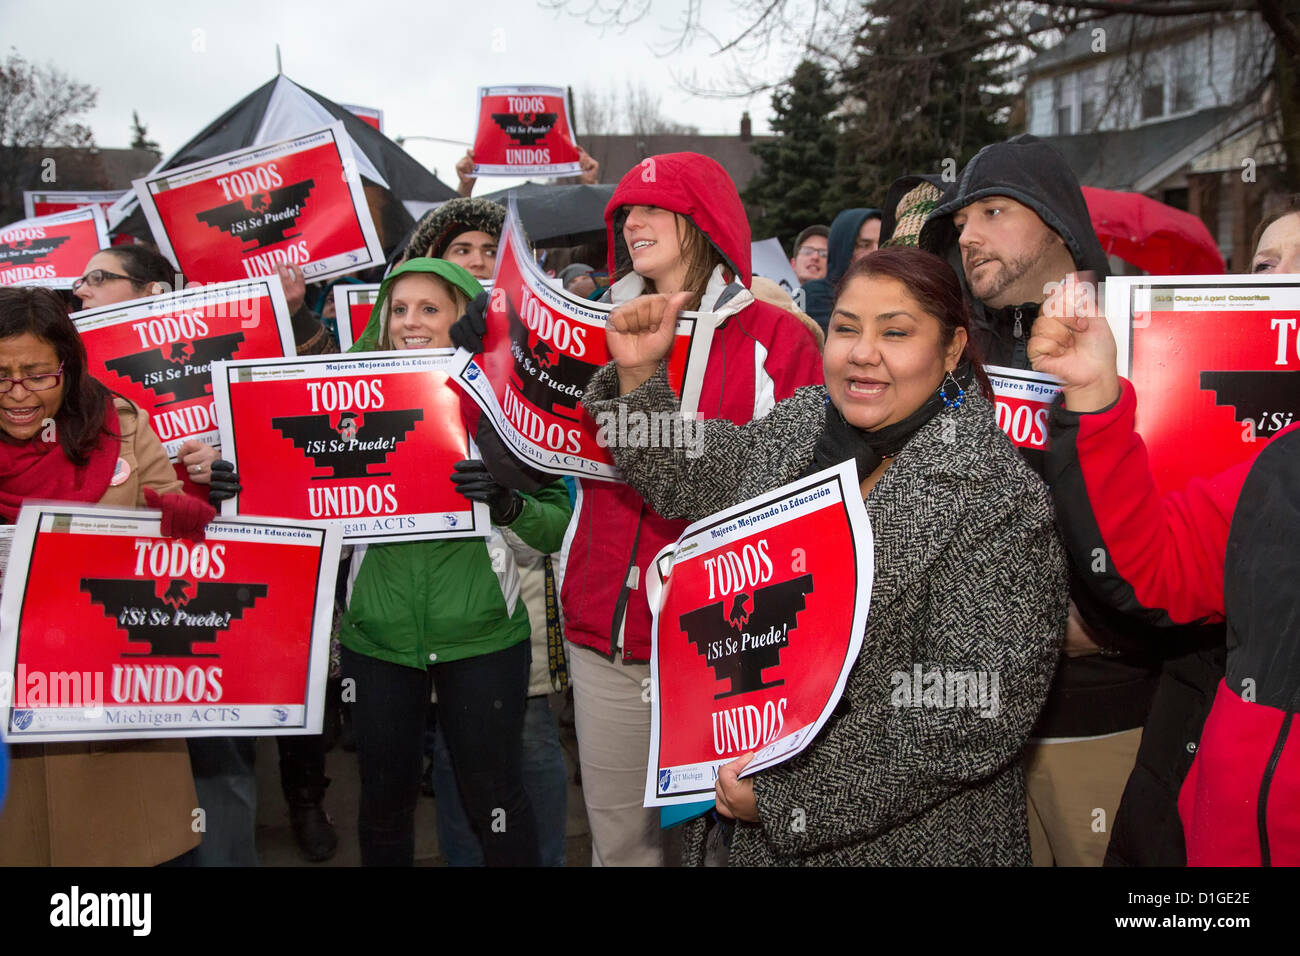 Detroit, Michigan - Teachers and parents at the Cesar Chavez Academy rally in support of a union organizing campaign - Stock Image